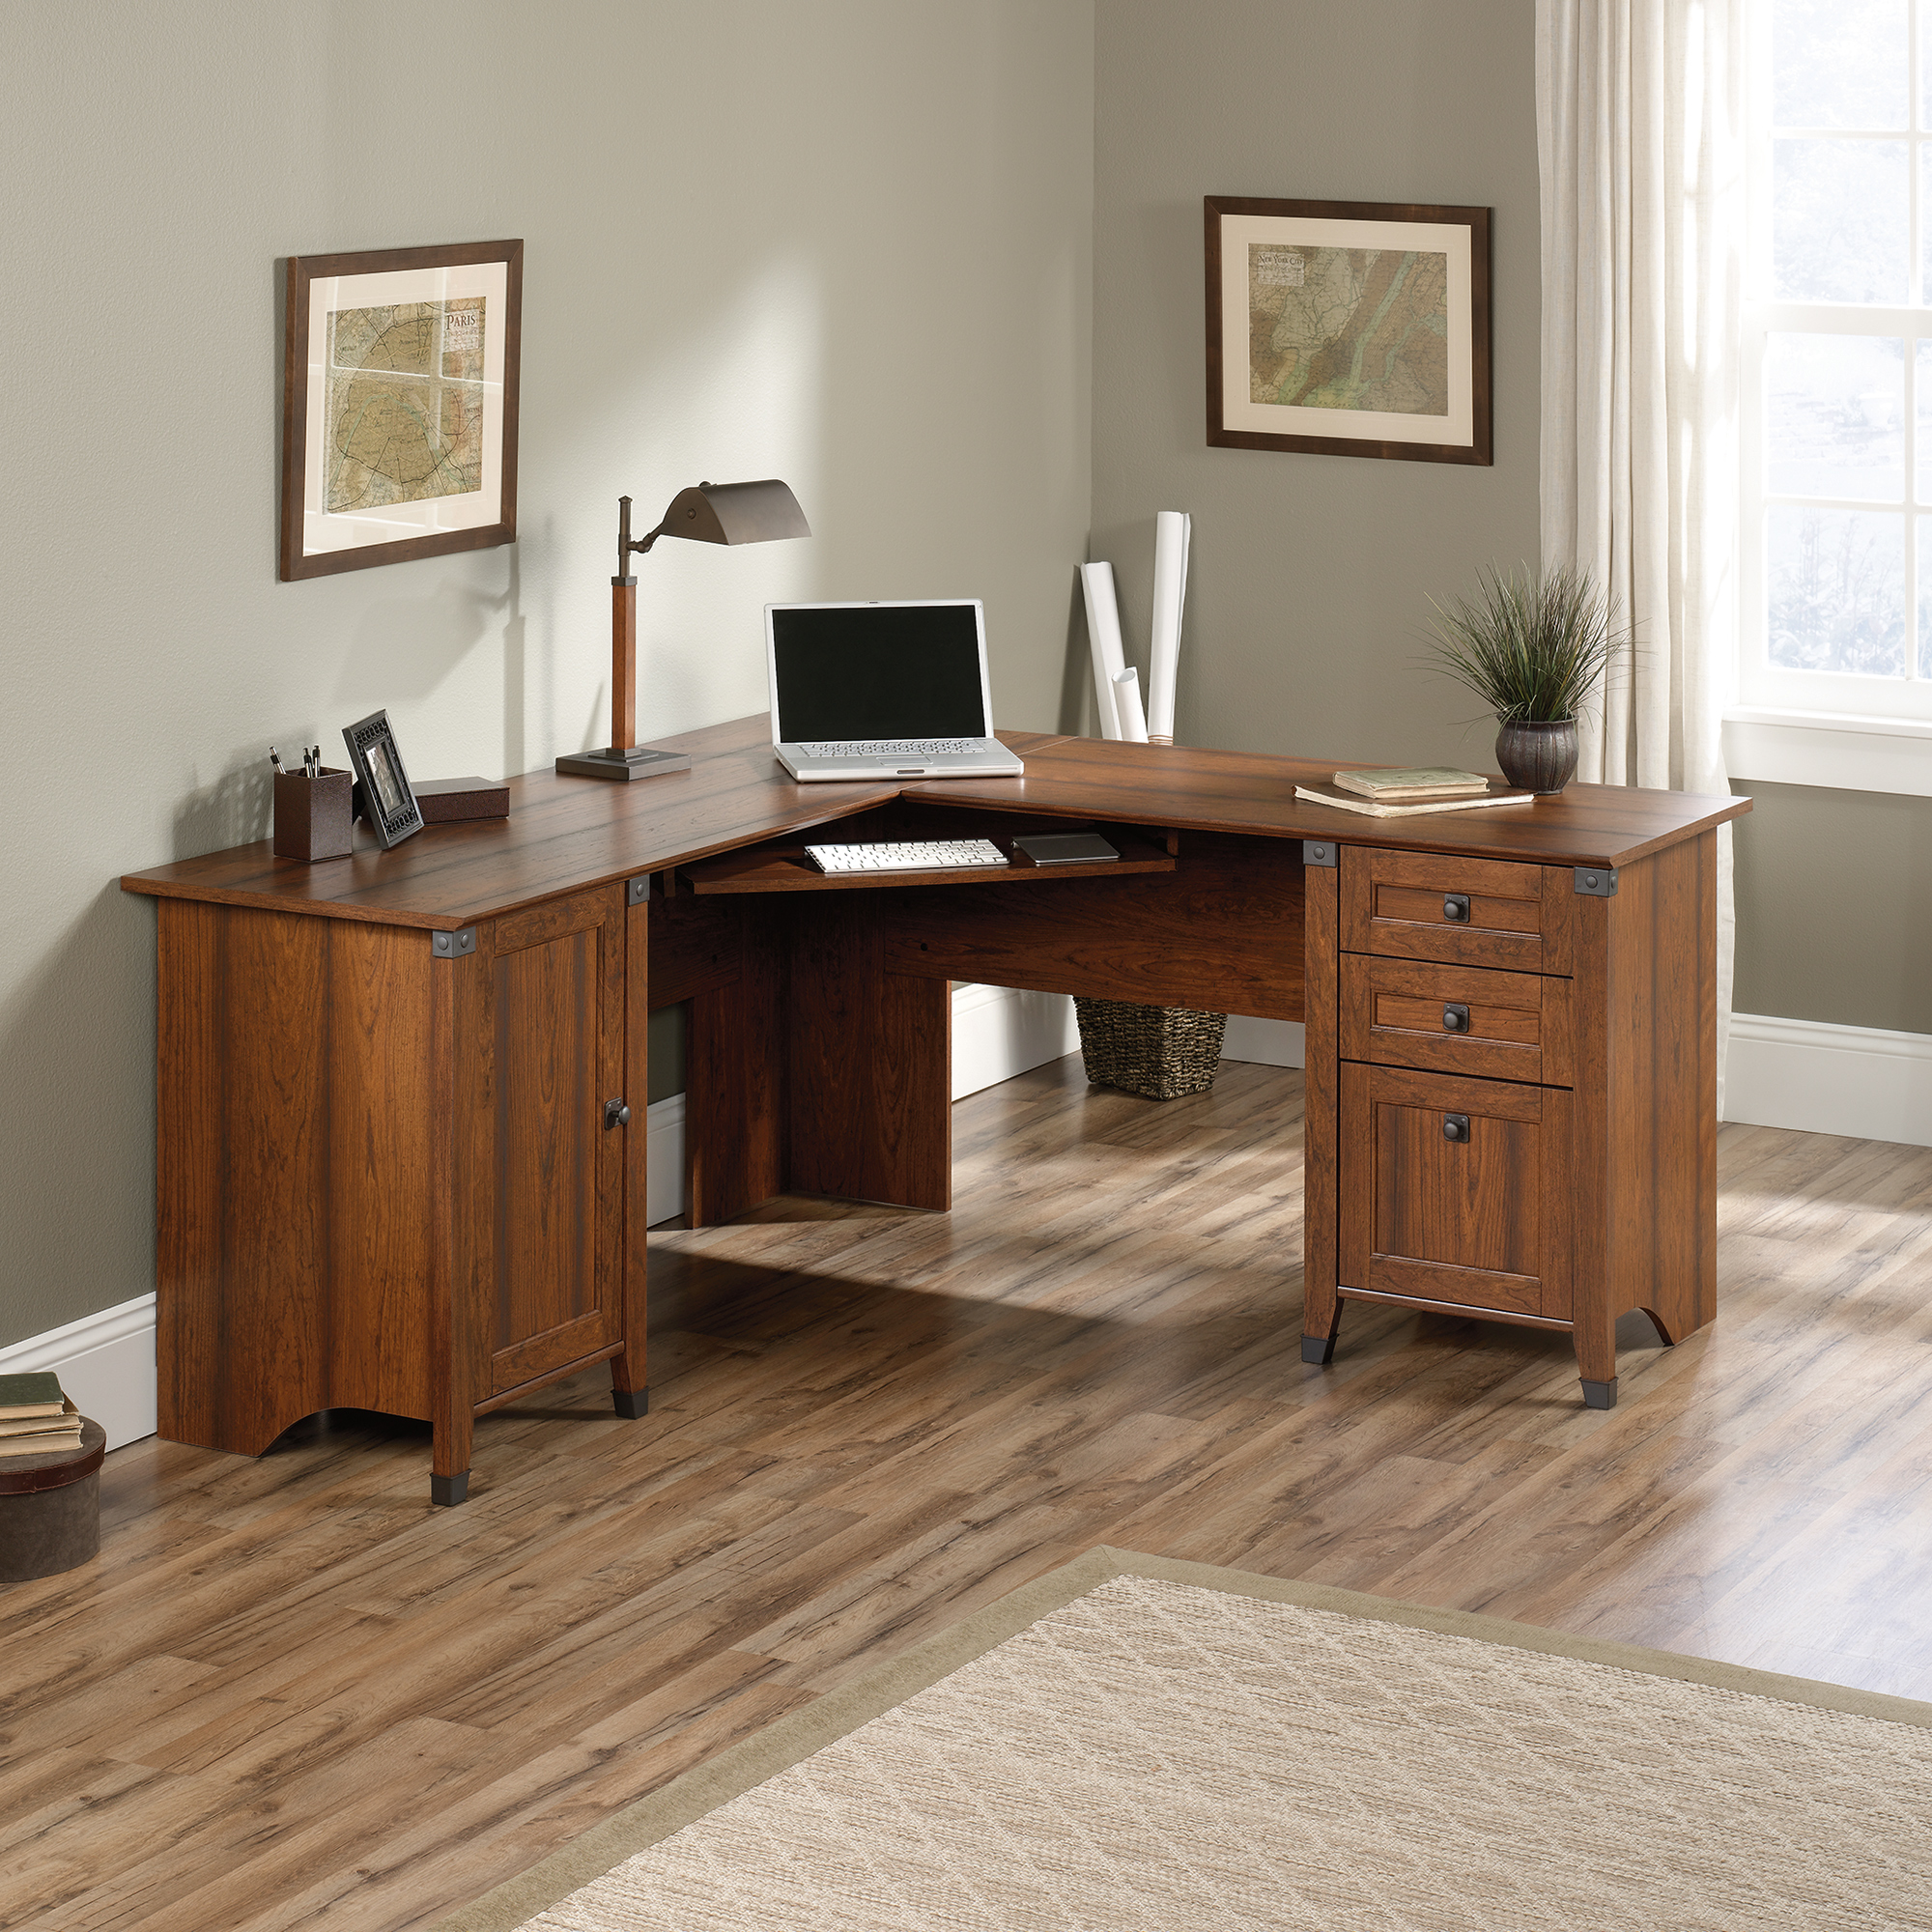 Sauder Harbor View Computer Desk with Hutch Antiqued Paint | Home Office Desk with Hutch | Sauder Computer Desks